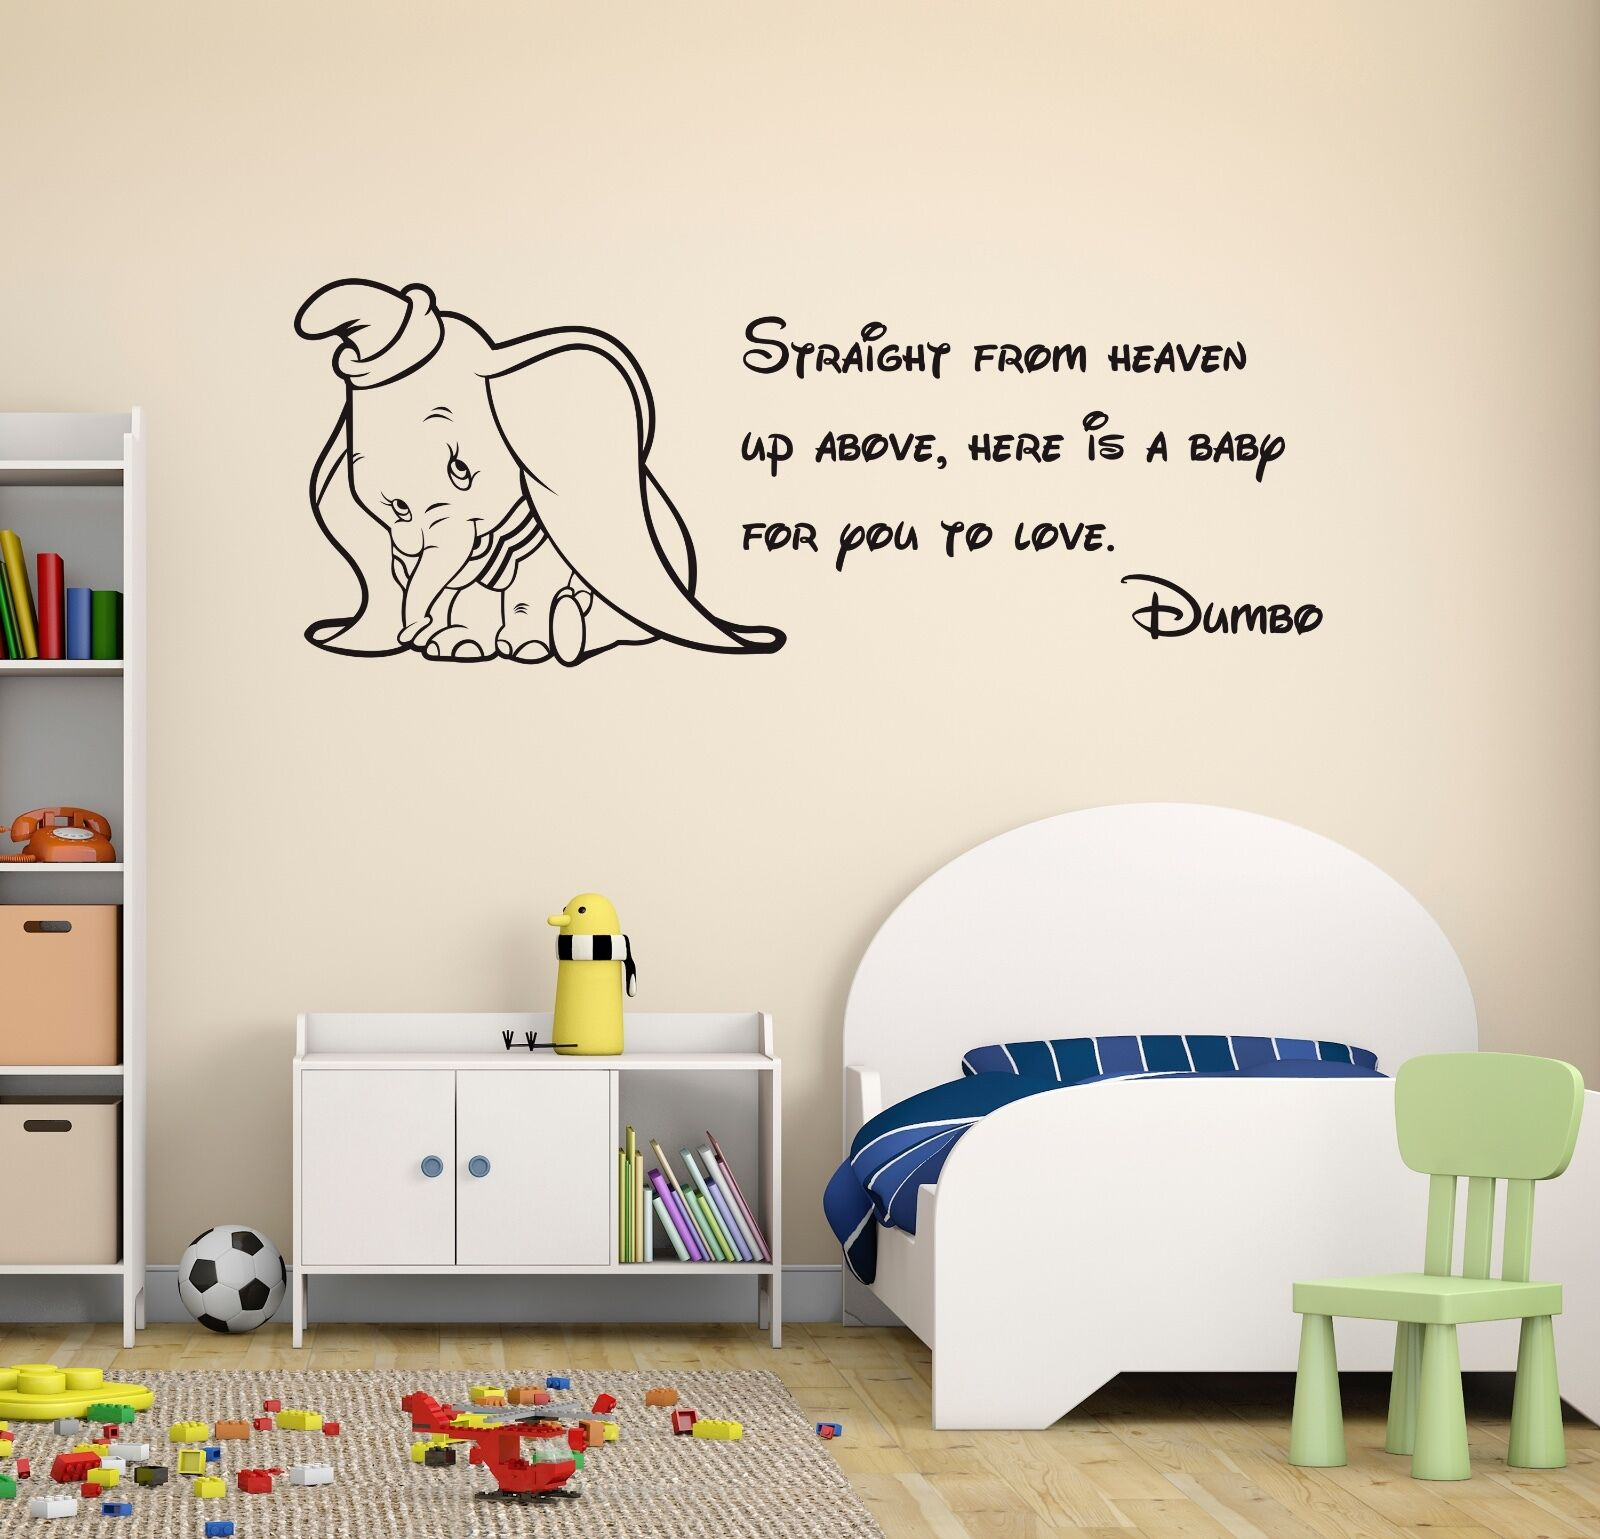 Dumbo Quote Wall Decal Disney Elephant Nursery Decor Art Mural Vinyl Sticker 1 Of 1free Shipping See More